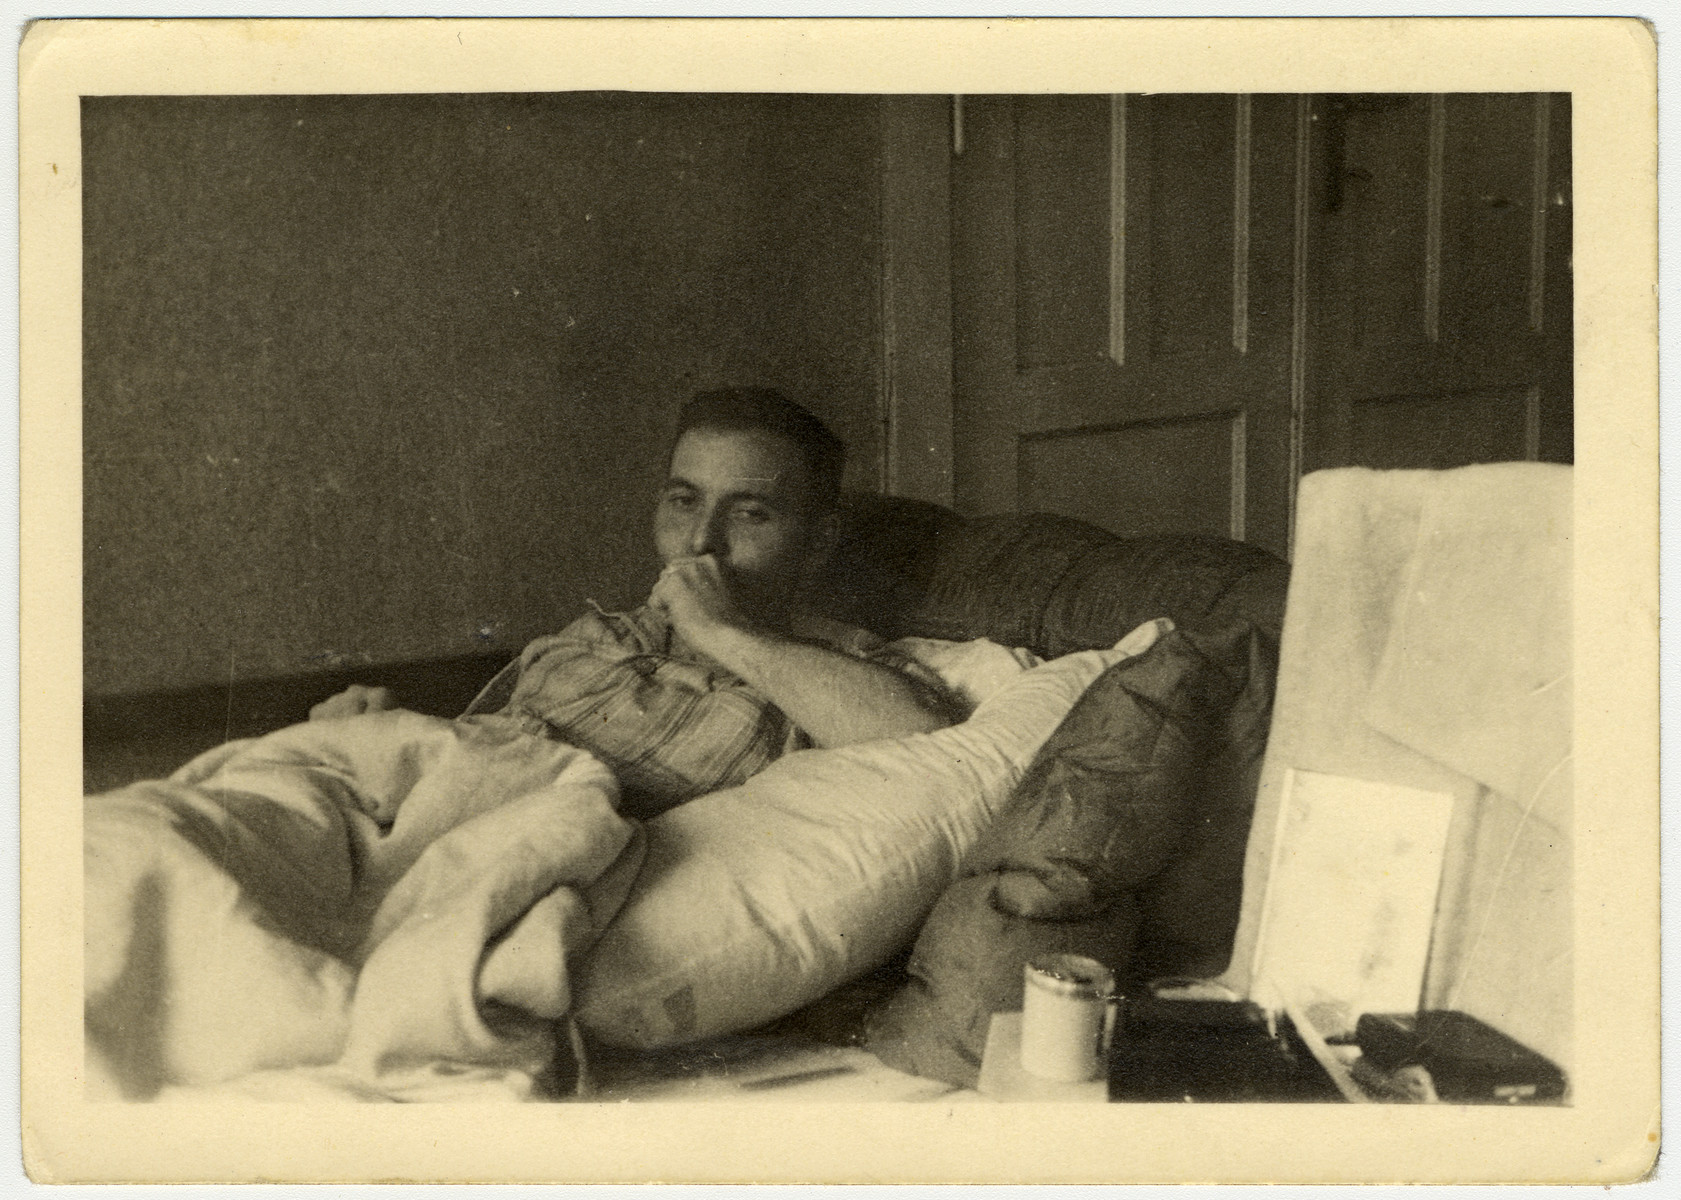 Close-up portait of a Jewish man recuperating after liberation in a sanatorium in Gauting.   Pictured is donor's husband, Pinchas Szwarc.